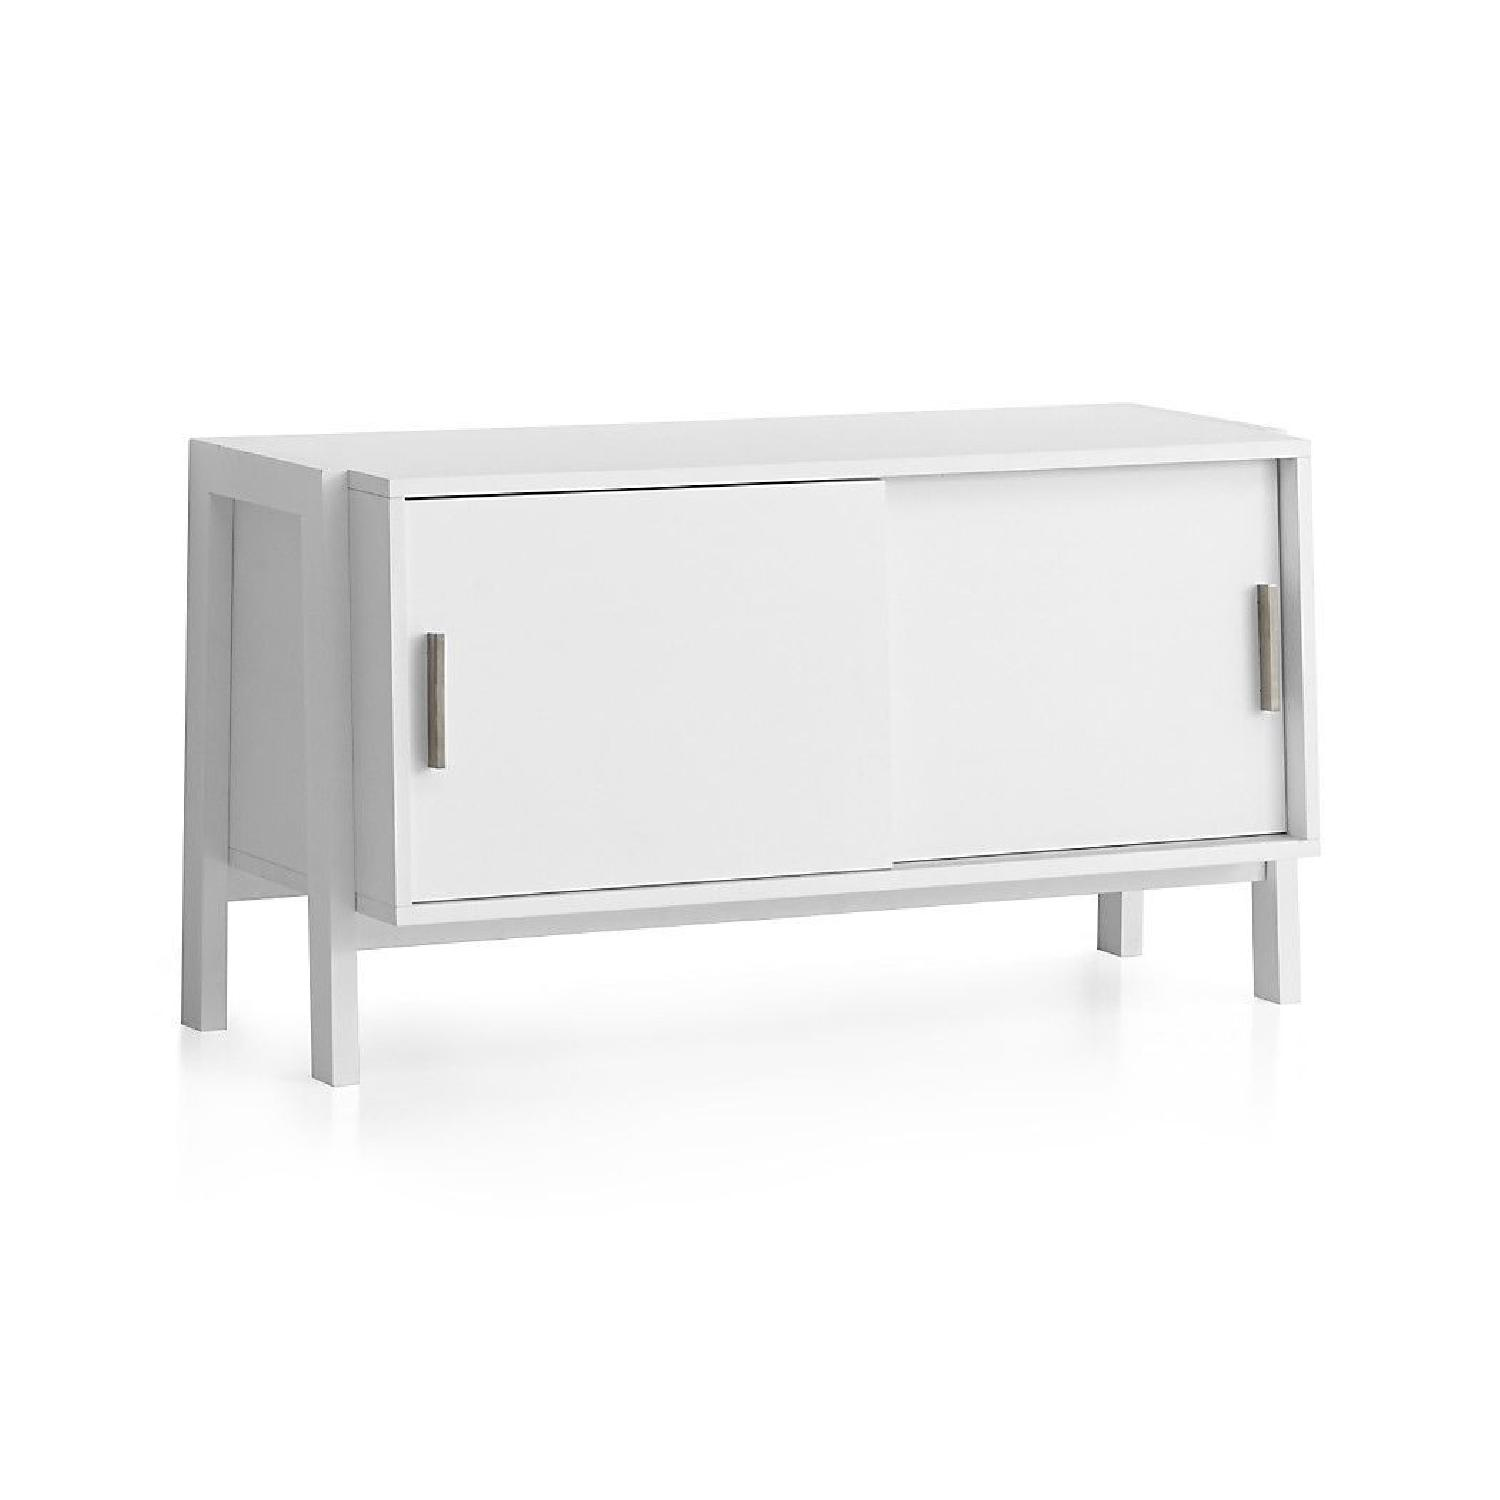 Crate & Barrel Sawyer Low White Media Stand